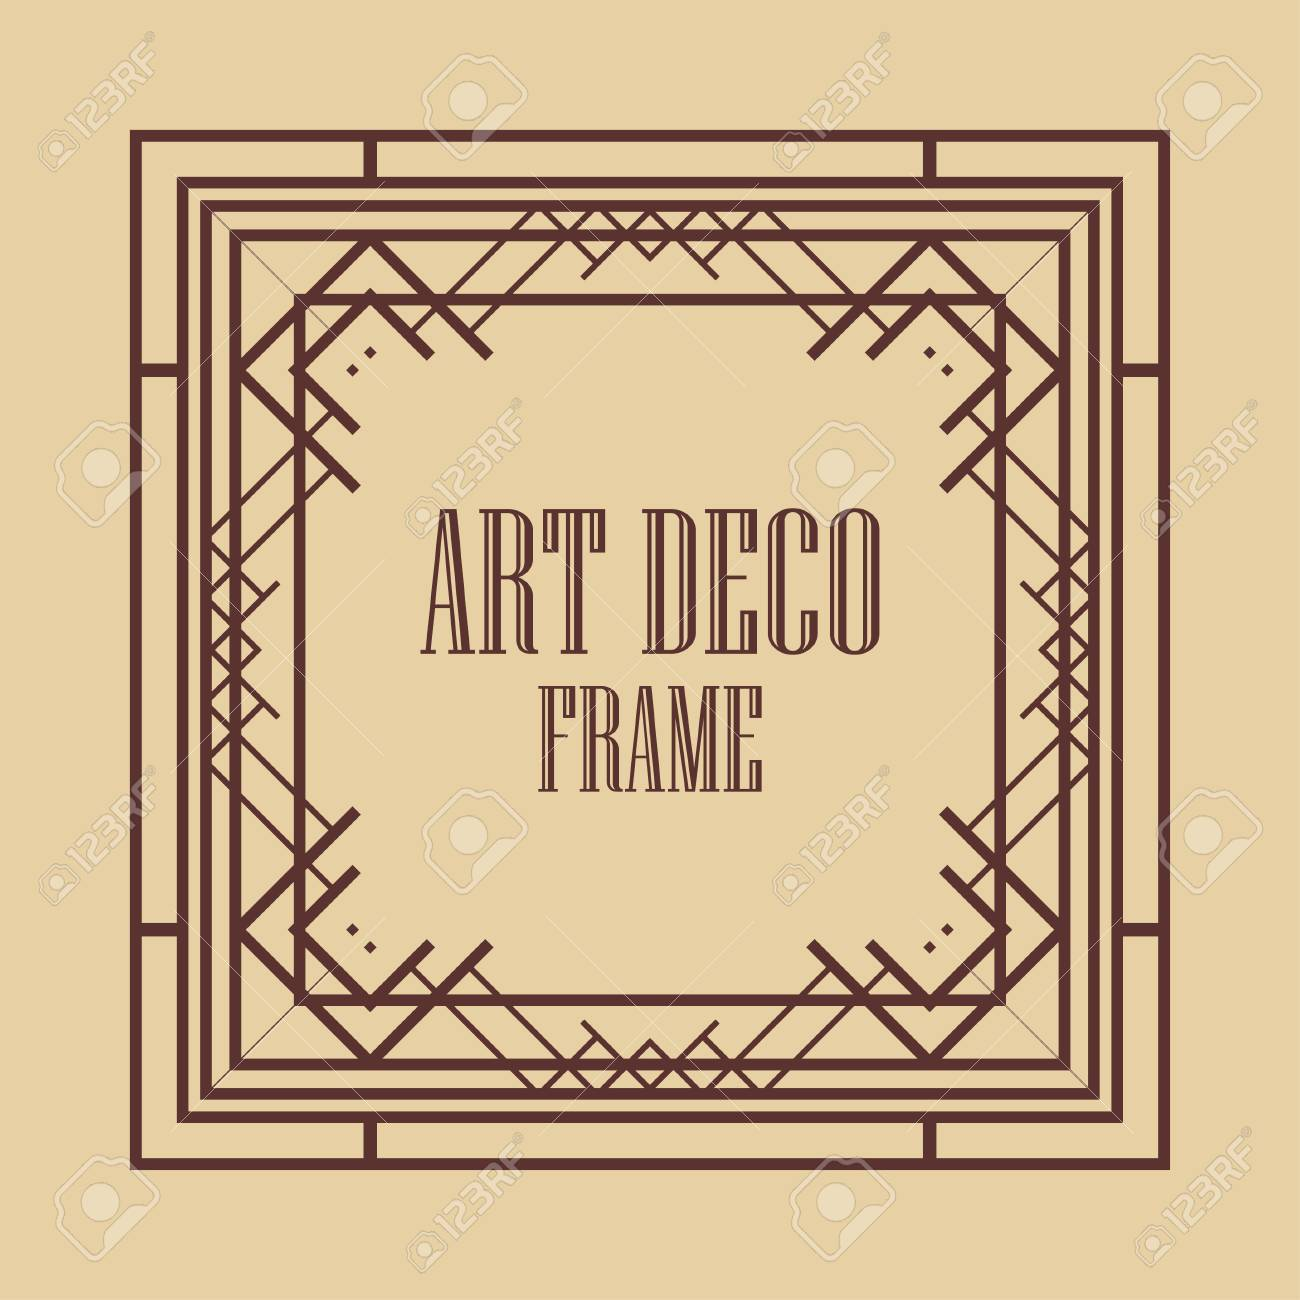 Vintage Art Deco Border Frame Template For Design Royalty Free